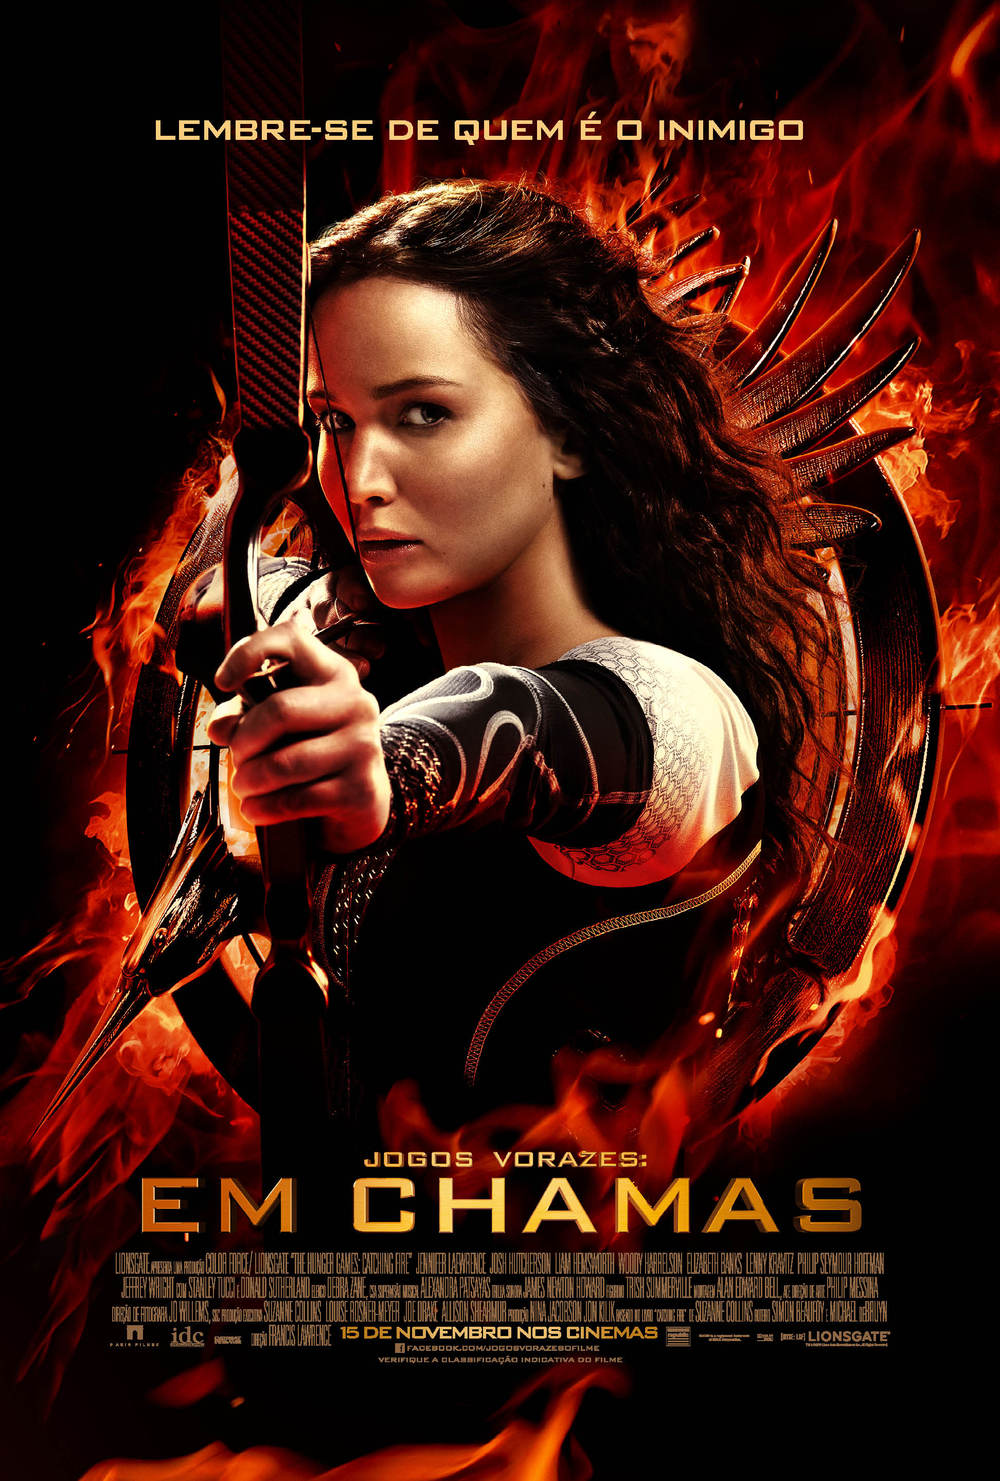 The Hunger Games Catching Fire-Official Poster Banner PROMO NACIONAL-02OUTUBRO2013